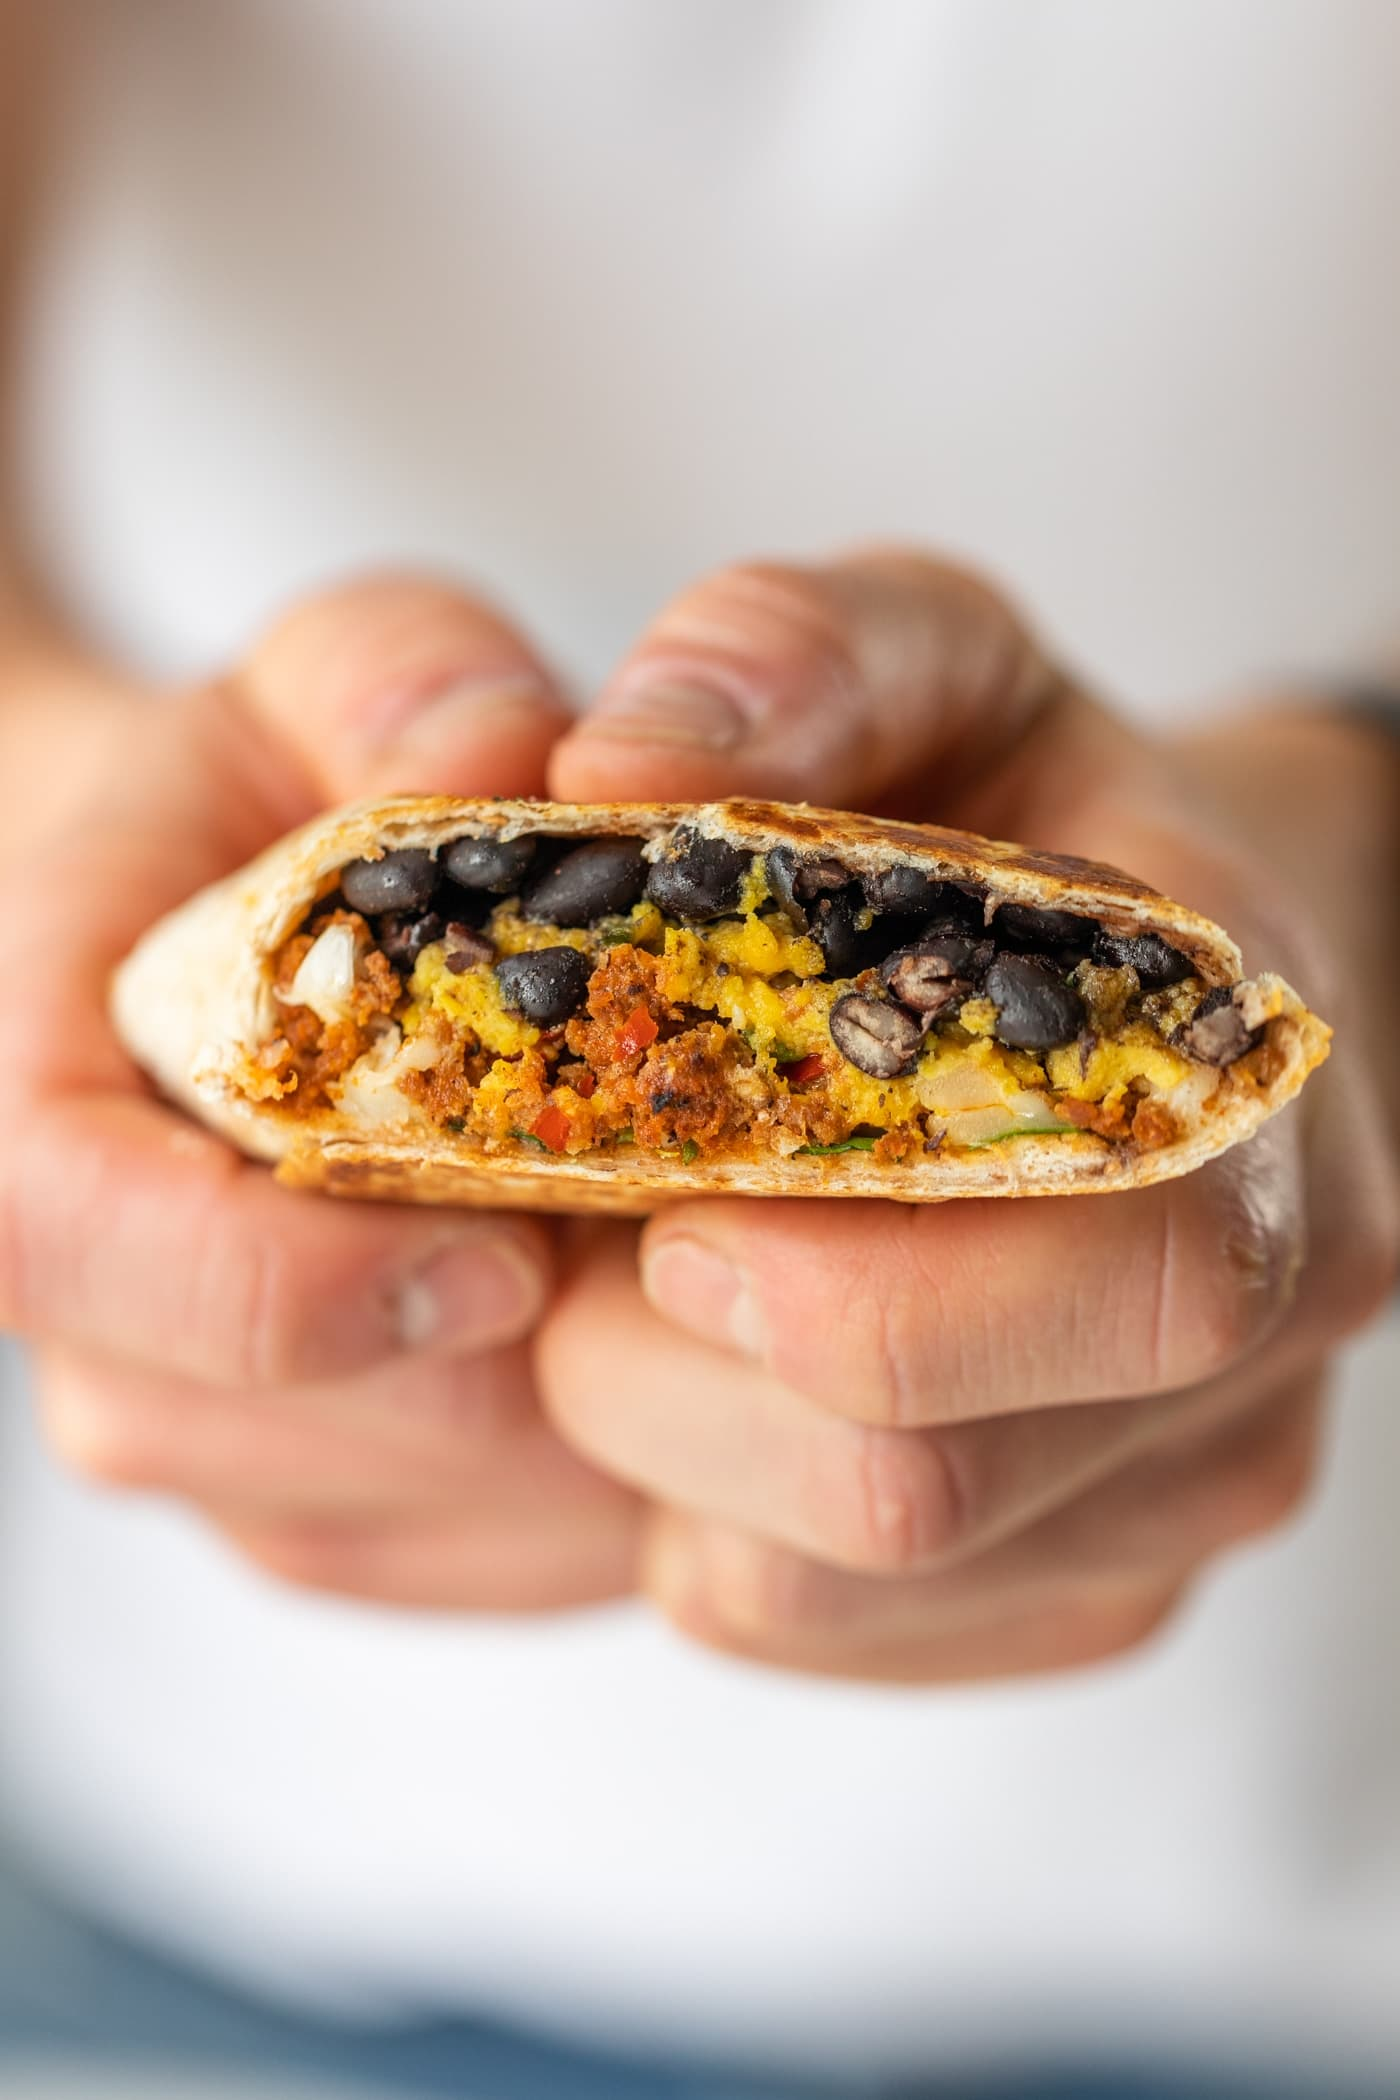 Two hands holding southwestern breakfast burrito with layers of black beans, chorizo, cheese, and eggs with white shirt in background